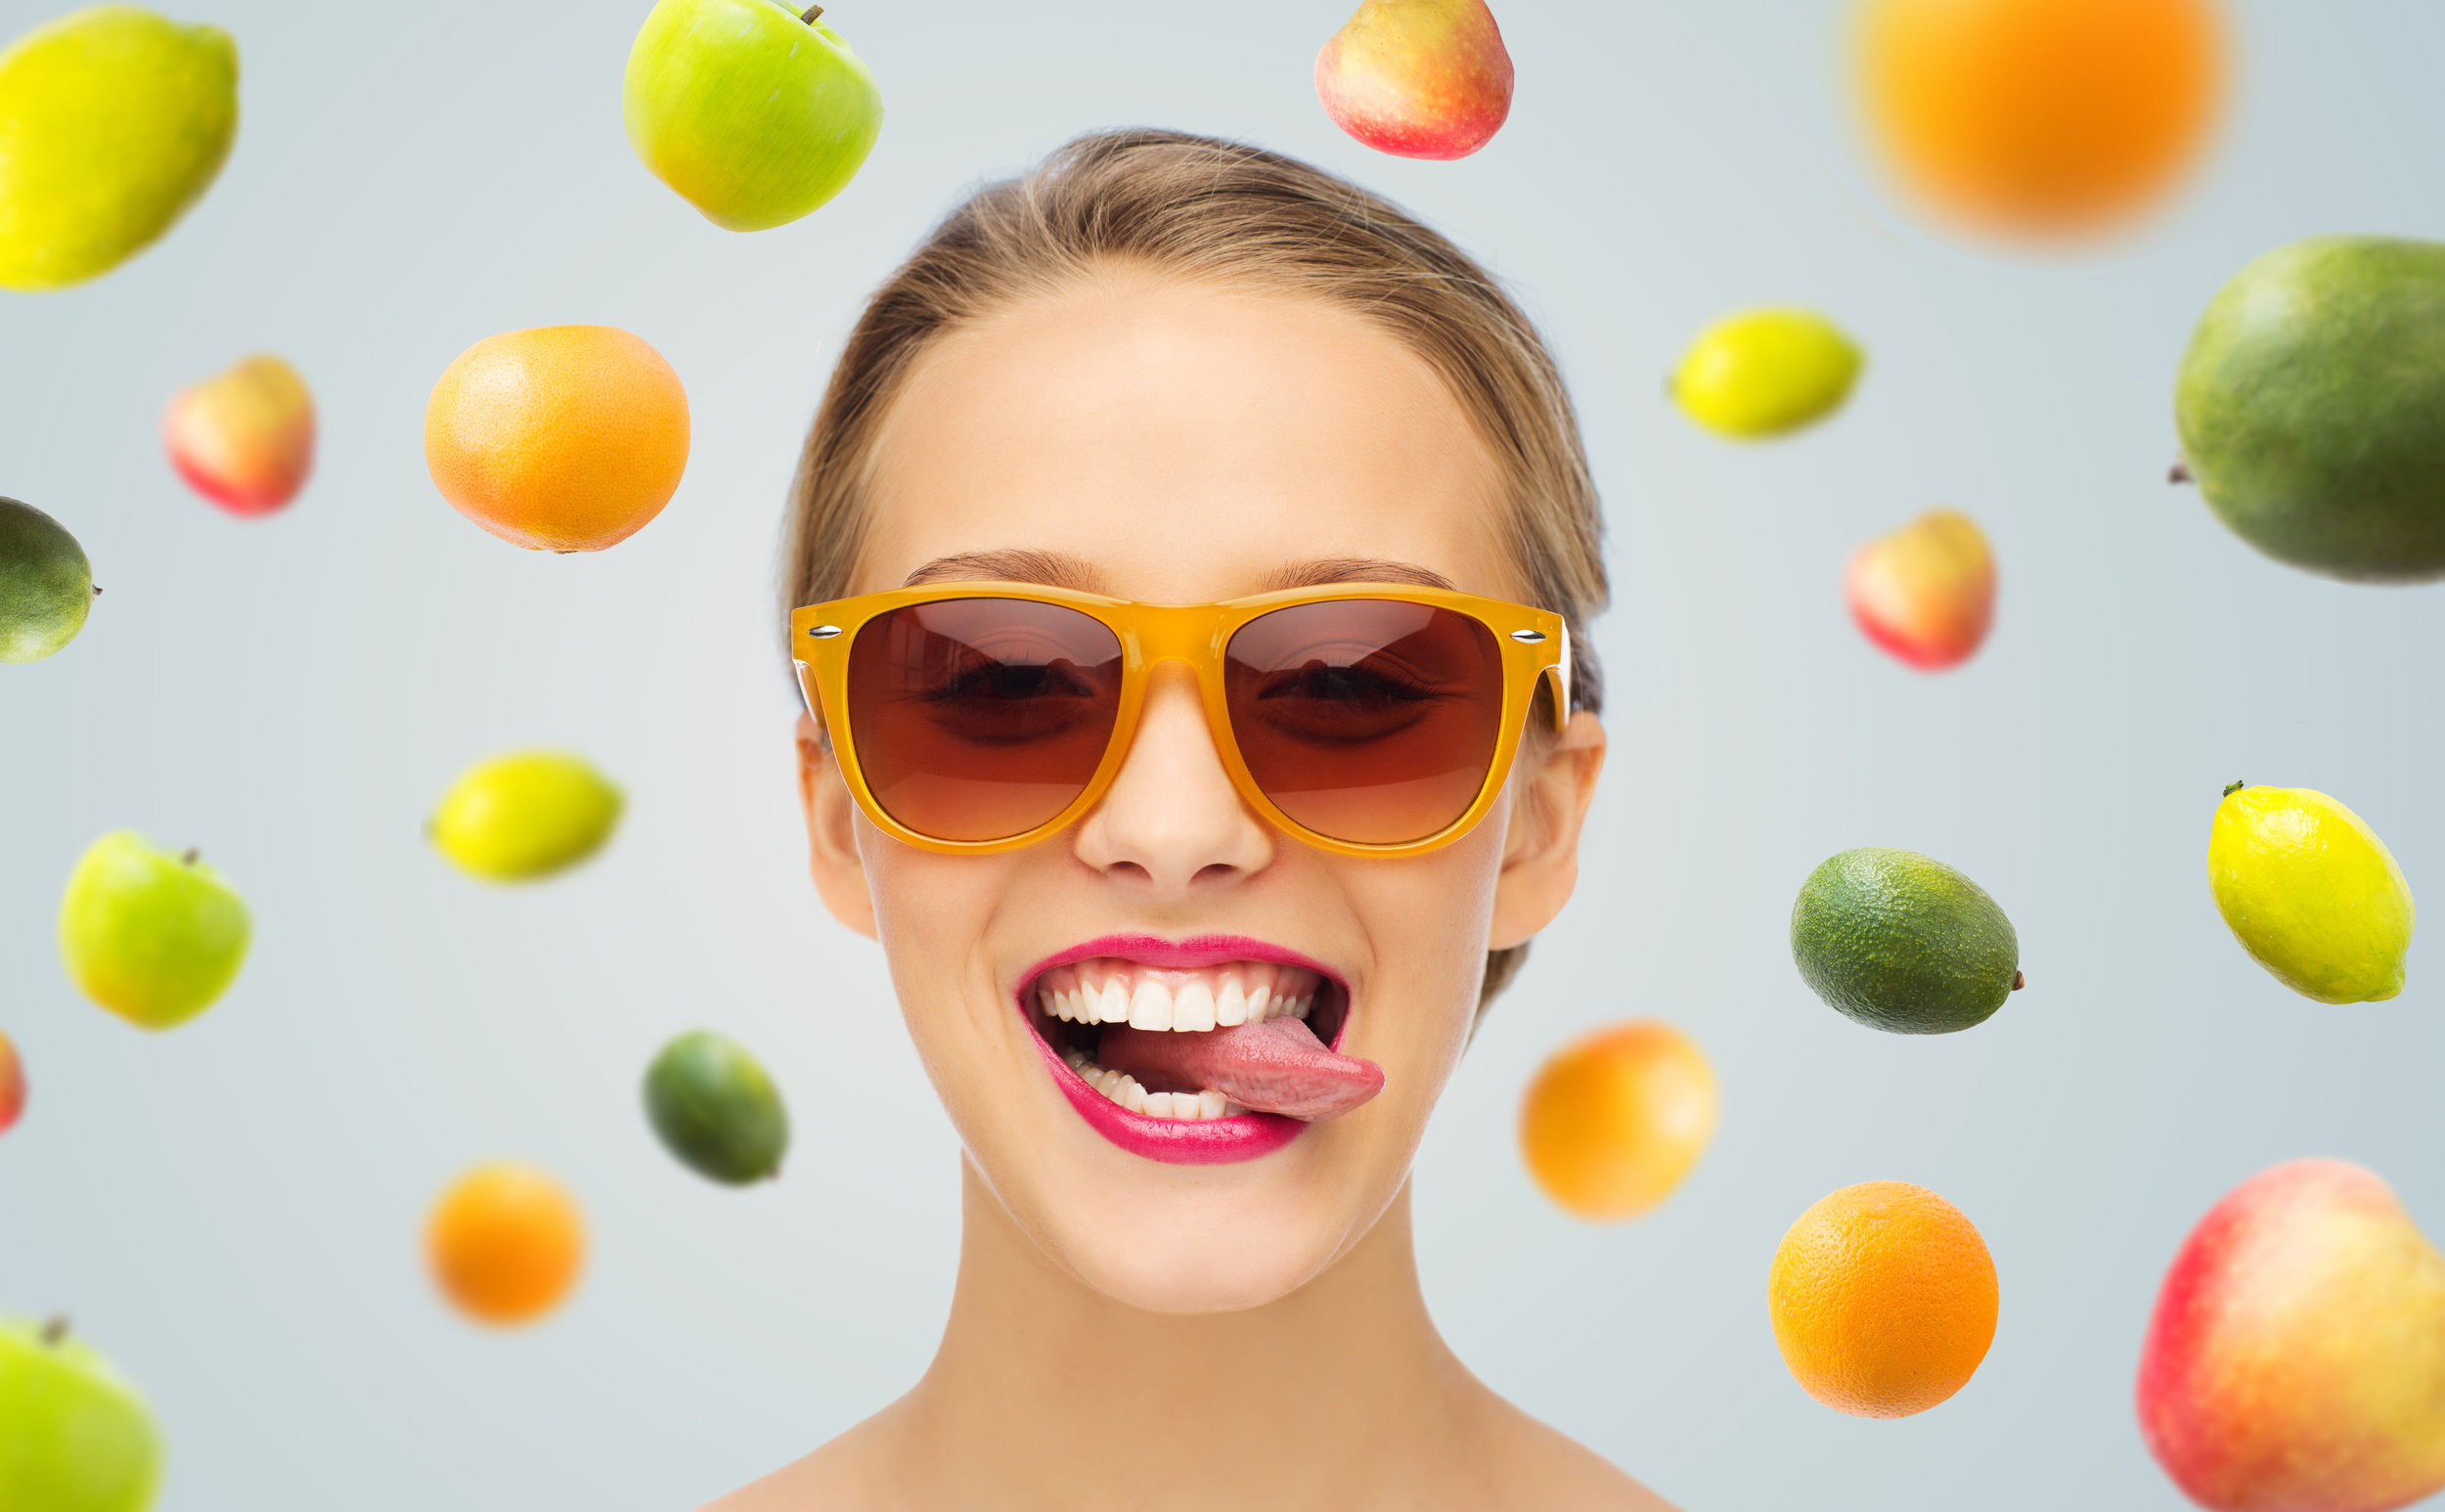 50781435 - people, expression, joy and fashion concept - smiling young woman in sunglasses with pink lipstick on lips showing tongue